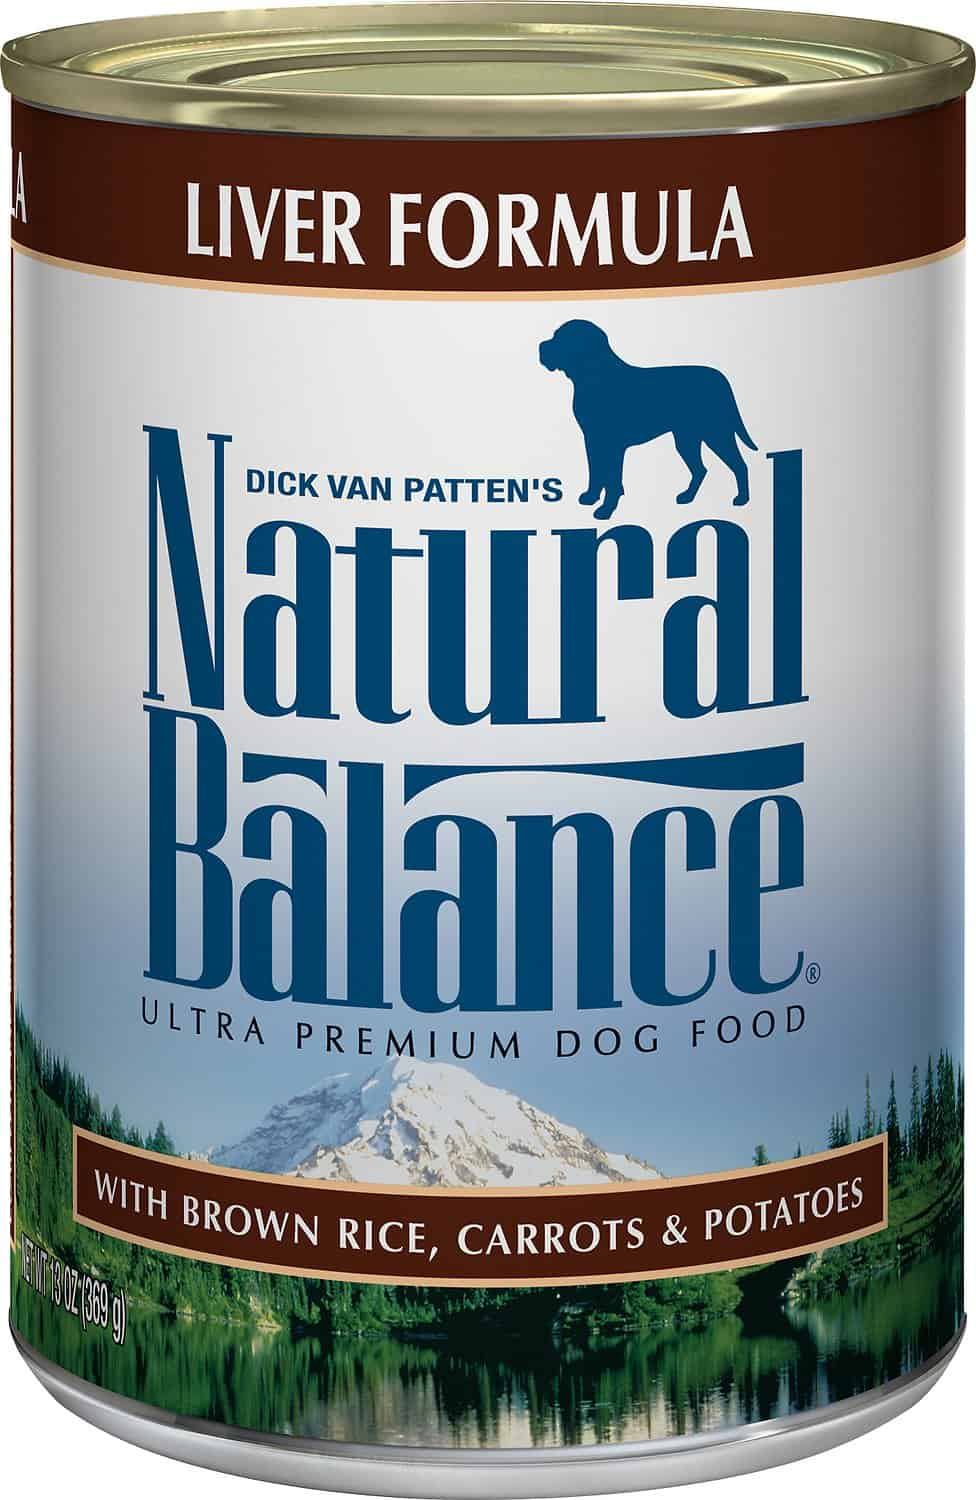 Natural Balance Dog Food Review 2021: Best High Quality Pet Food? 24